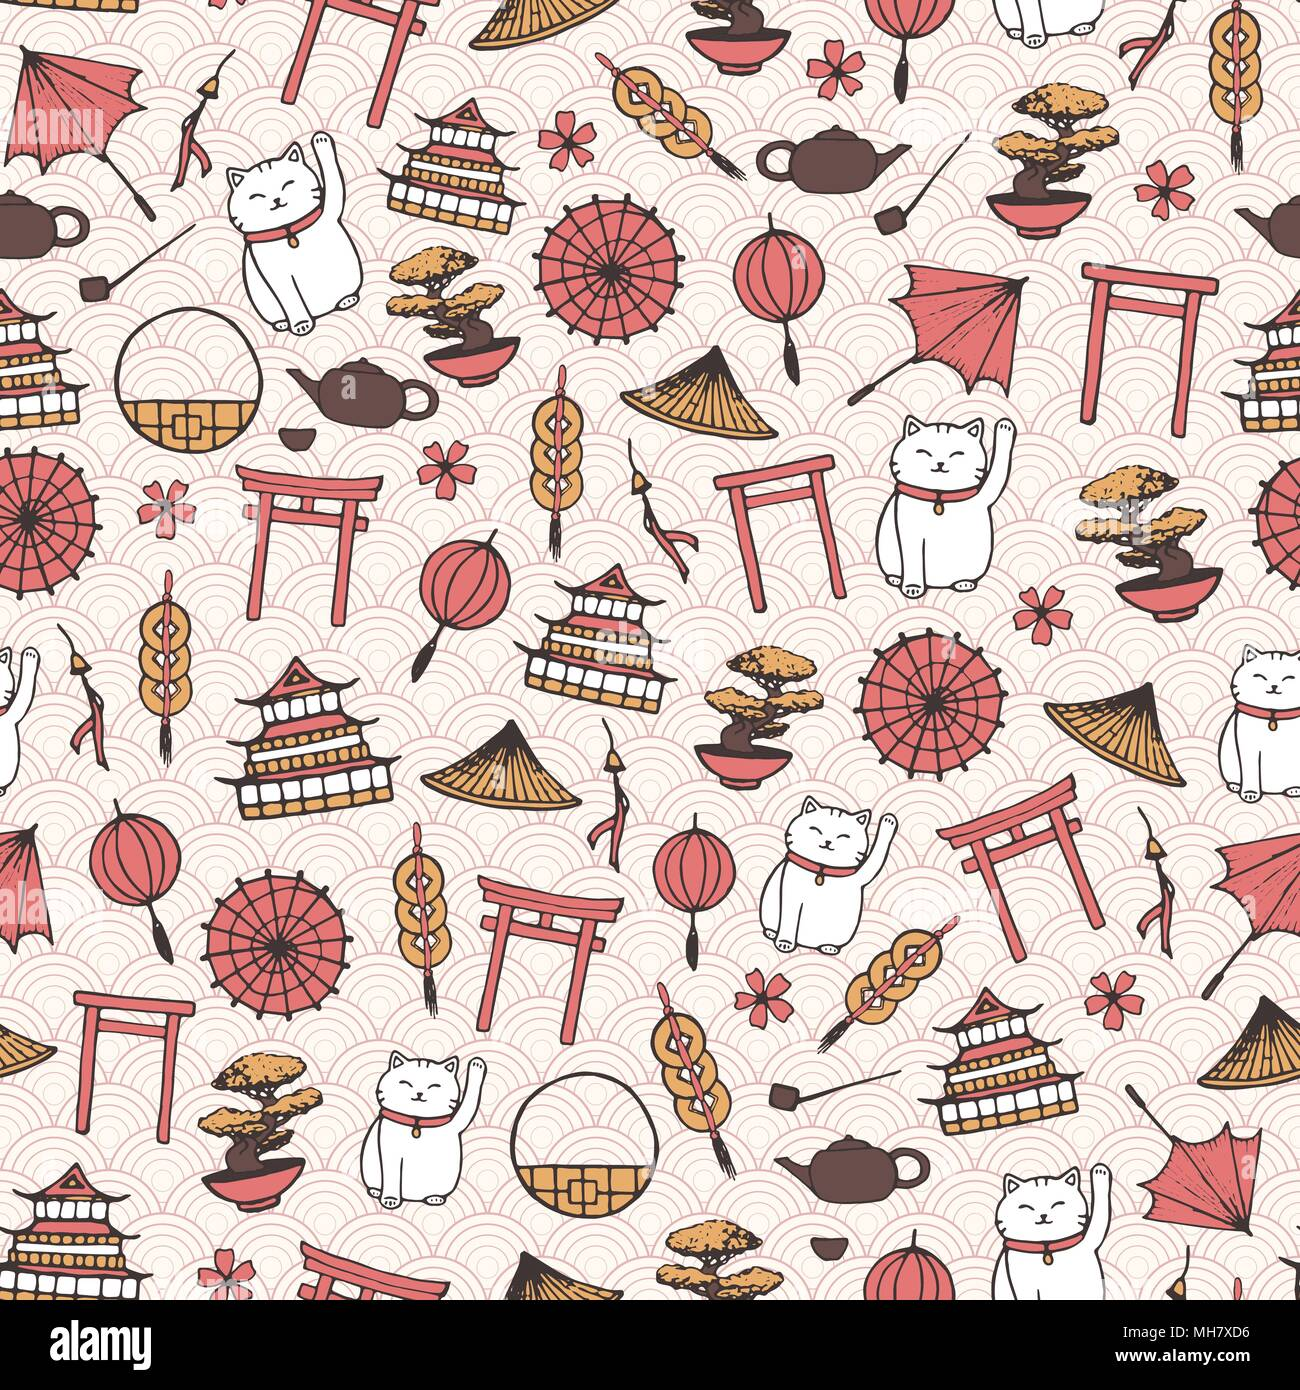 Hand Drawn Vector Asian Seamless Pattern With Umbrellas Japanese Lucky Cats Coins Lanterns